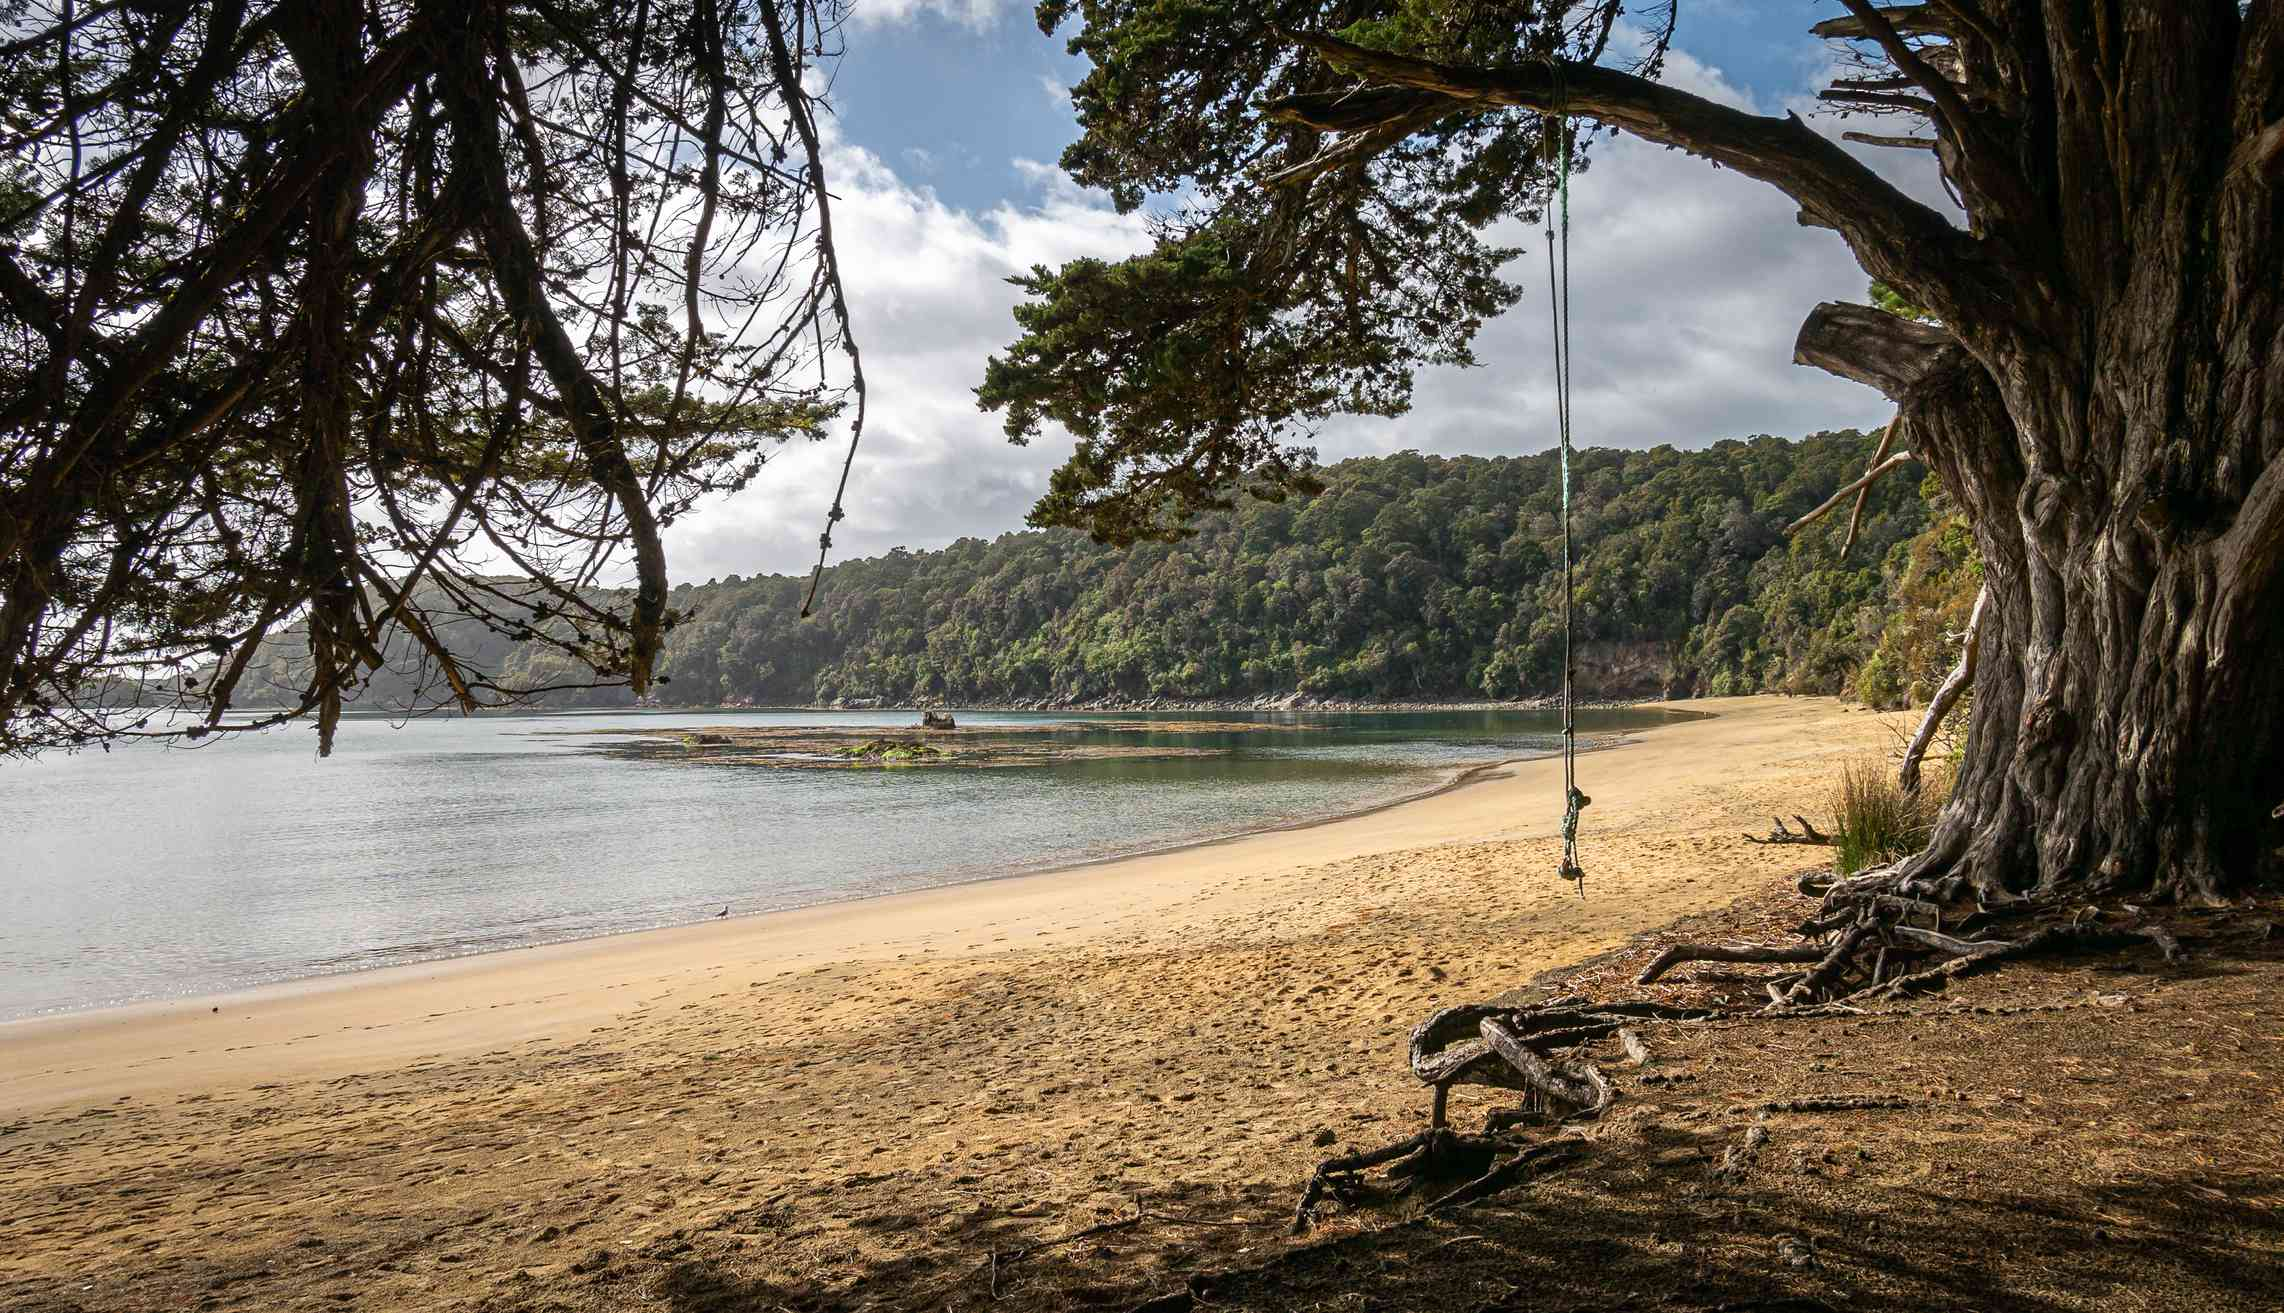 golden sand beach with sprawling tree and a rope swing